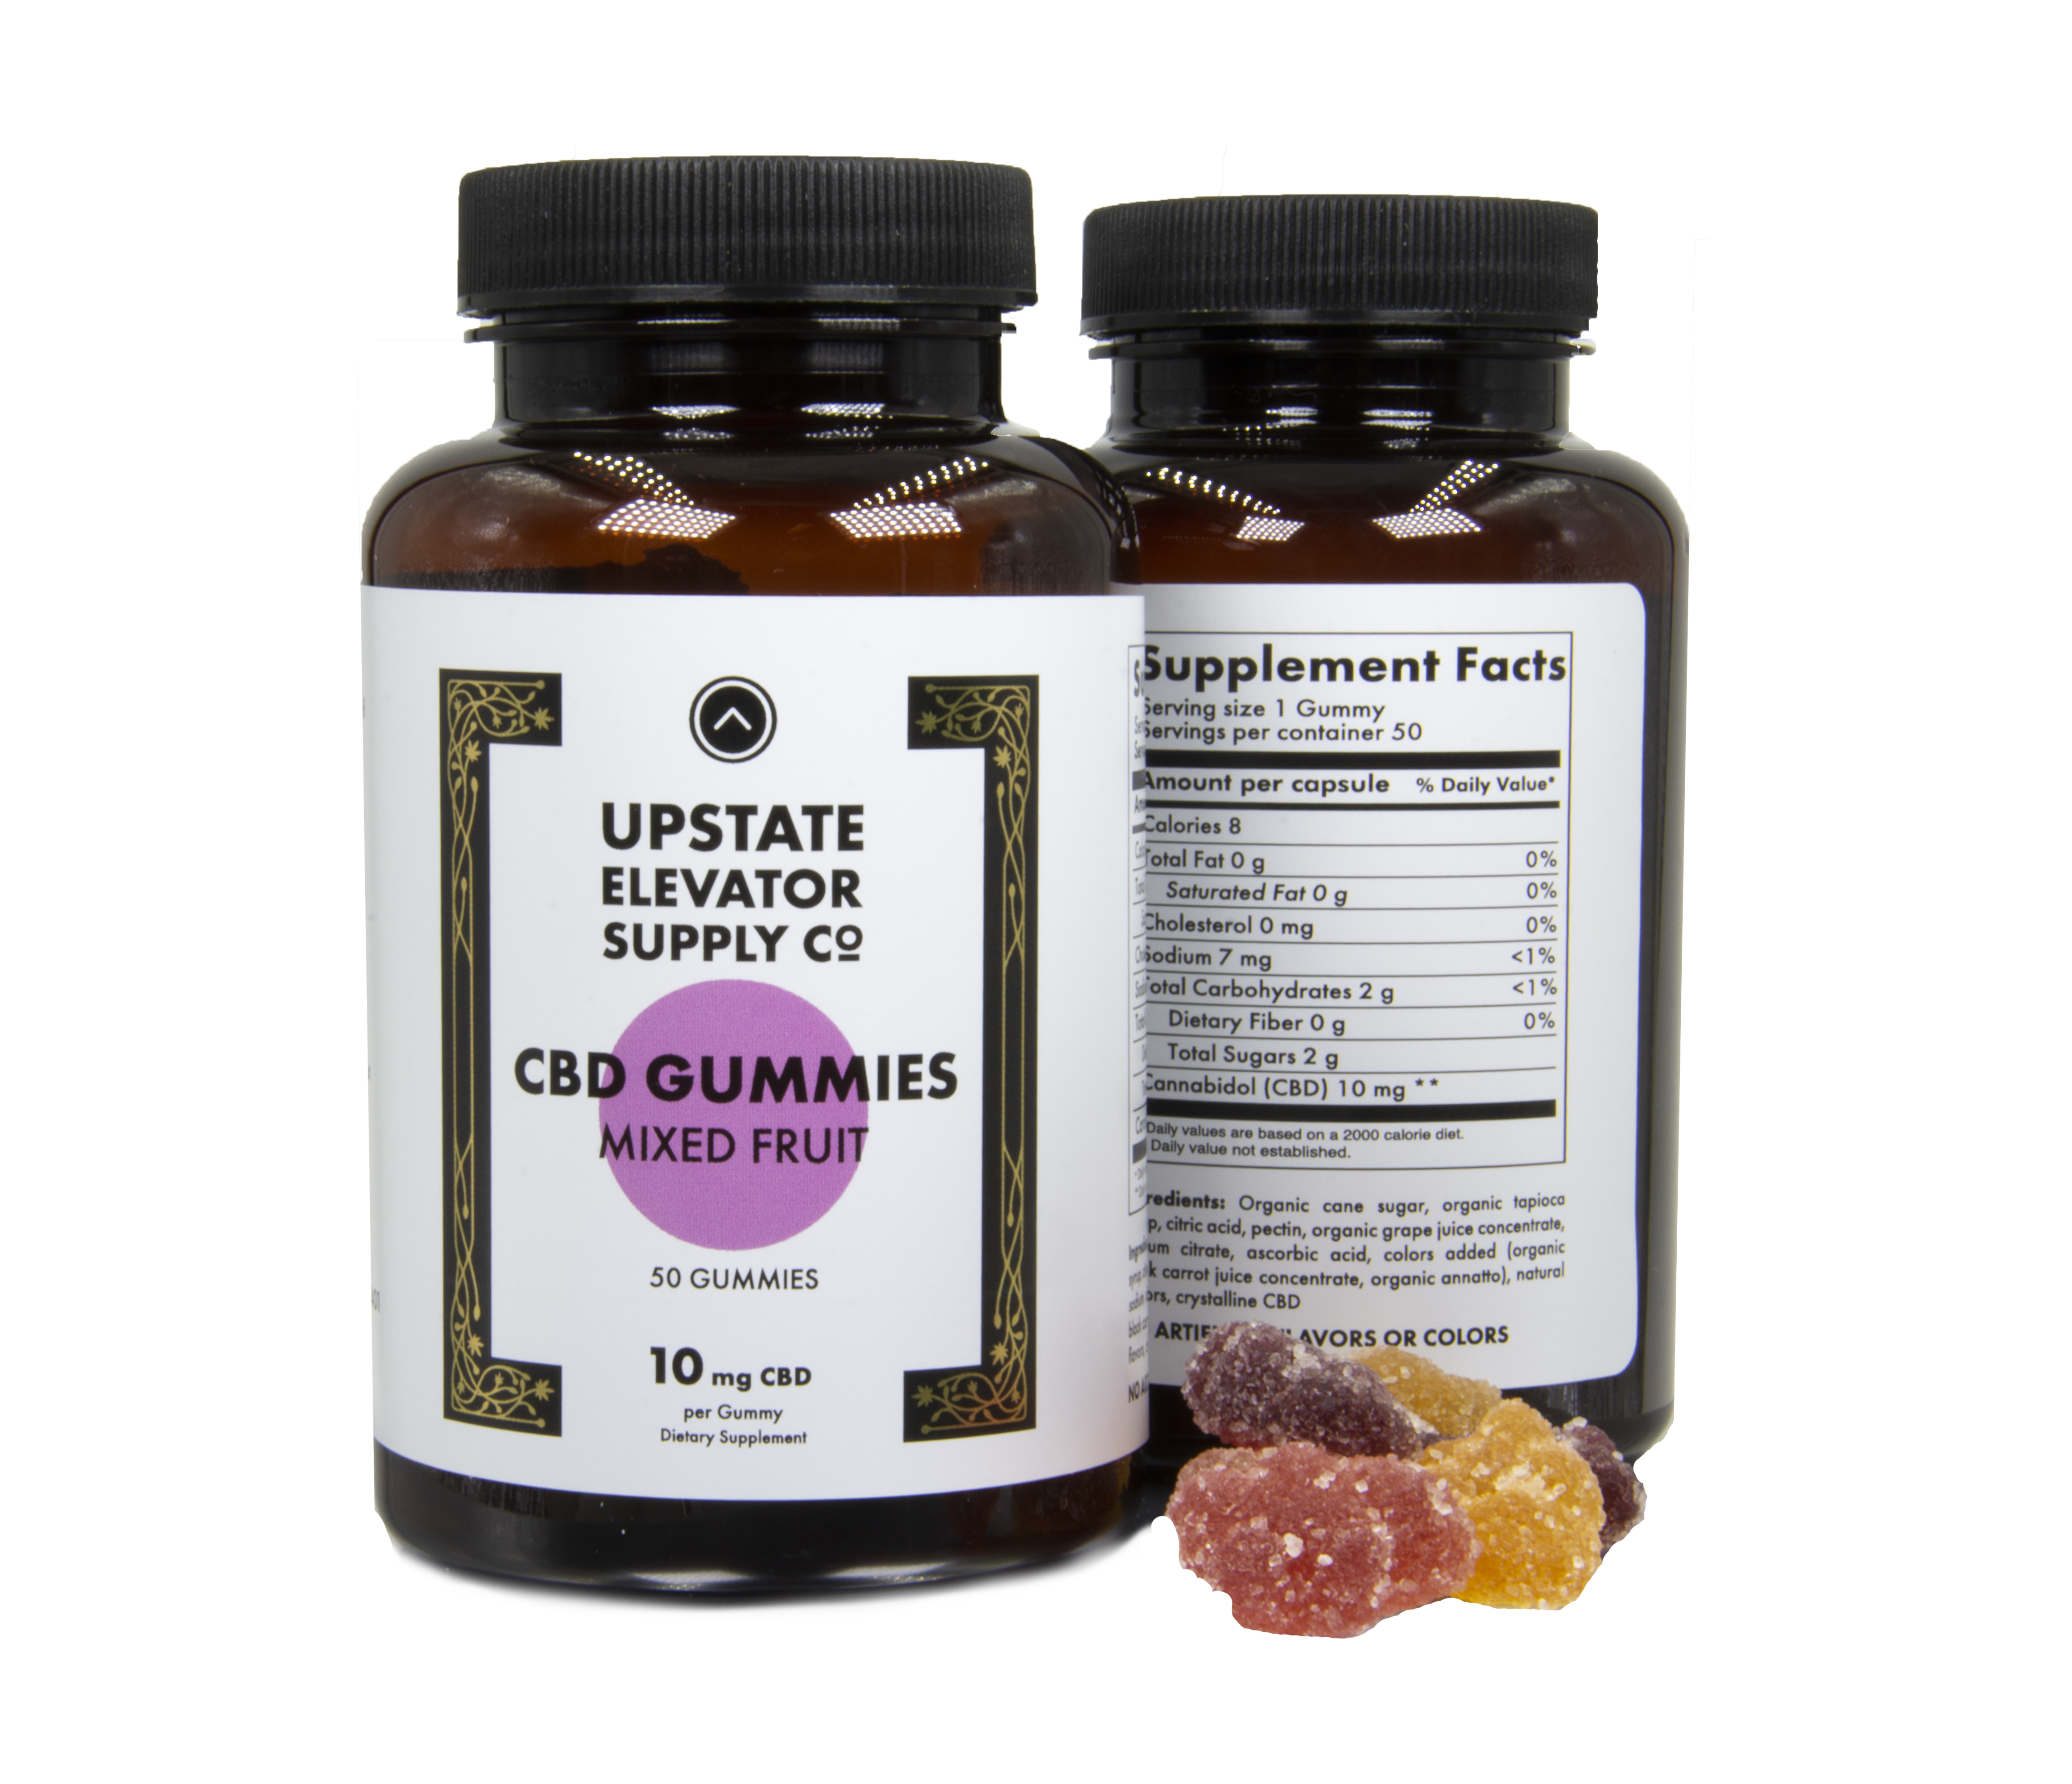 CBD Gummy Bottle - Mixed Fruit (10mg, 50qty)